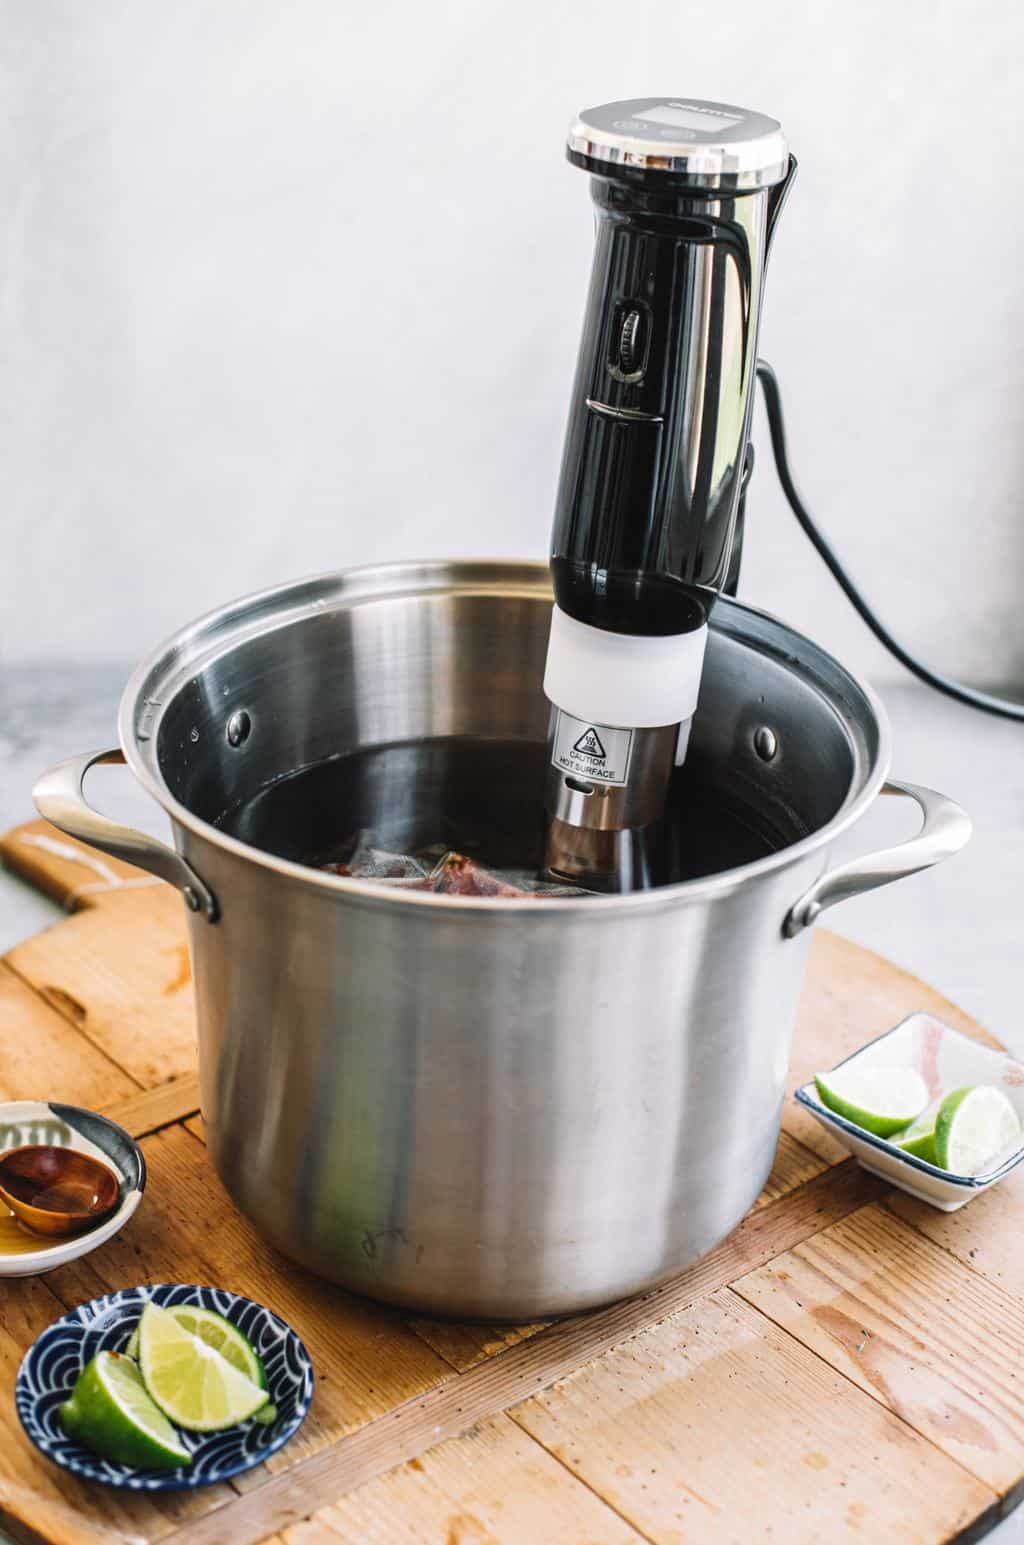 Sous vide machine inserted into large water bath in stainless steel pot